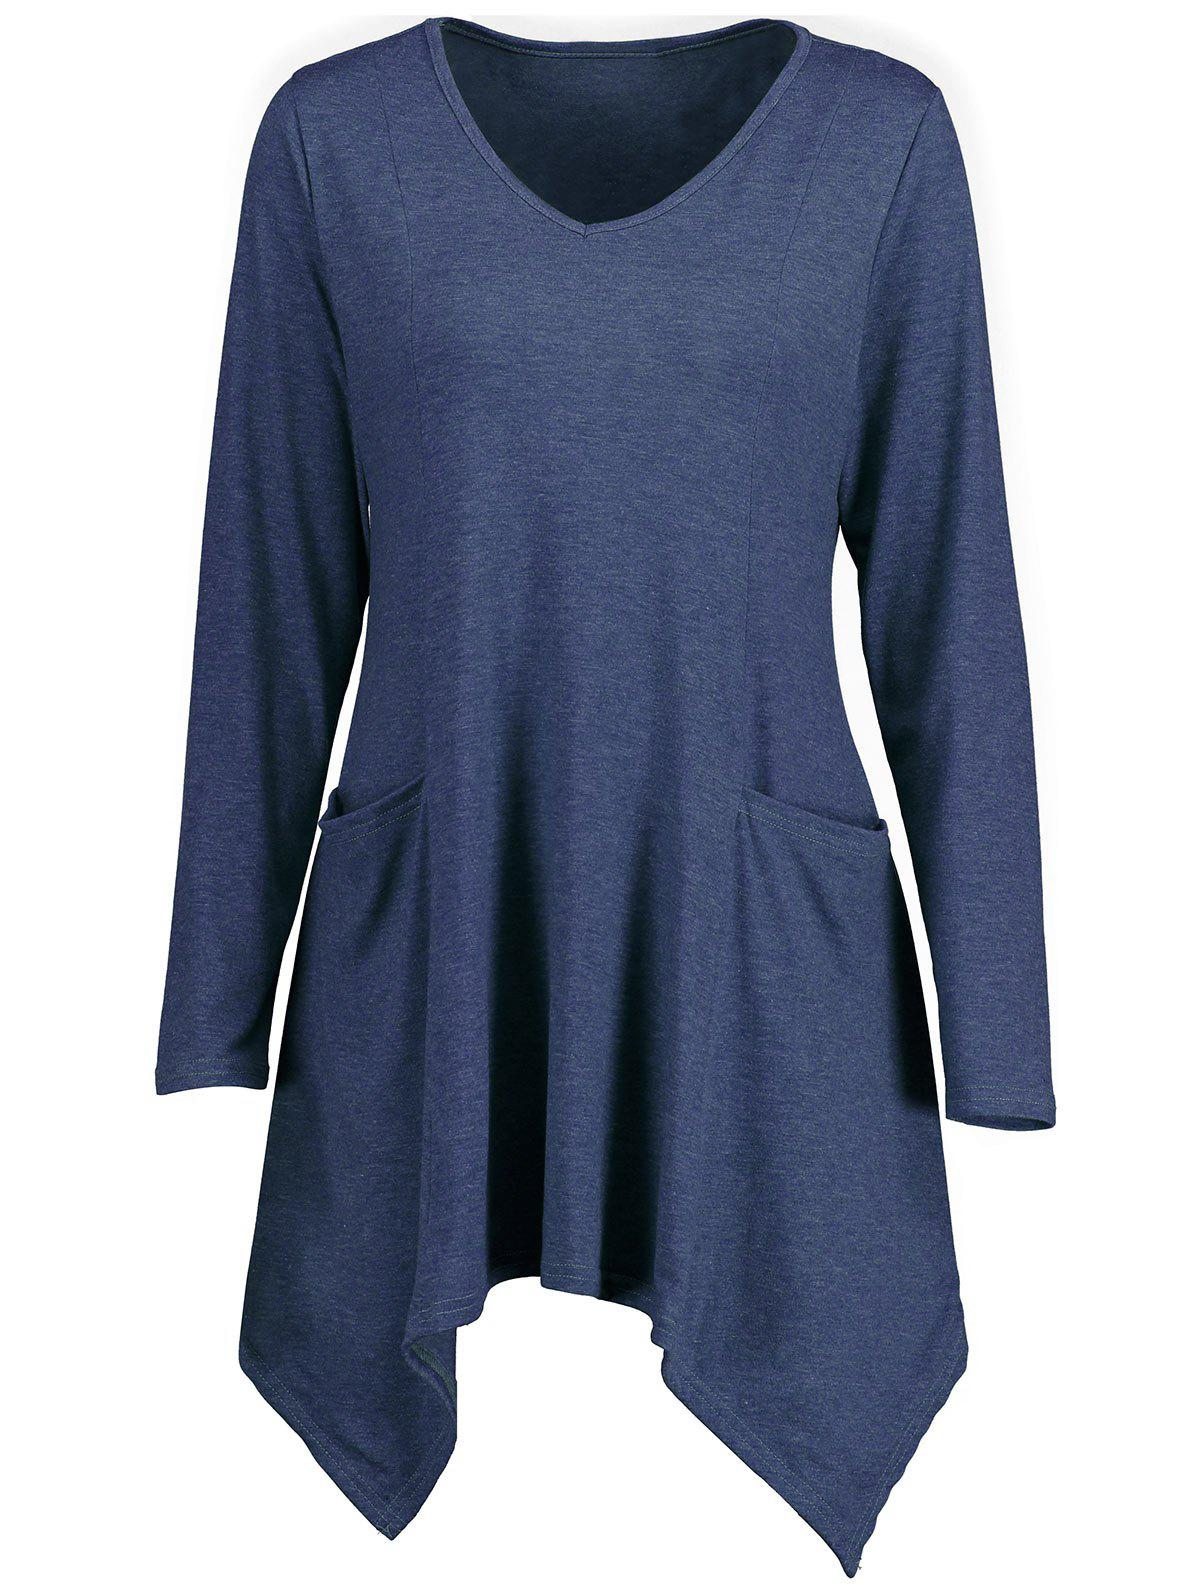 Handkerchief Longline V Neck T-shirtWOMEN<br><br>Size: XL; Color: BLUE; Material: Polyester; Shirt Length: Long; Sleeve Length: Full; Collar: V-Neck; Style: Casual; Pattern Type: Solid Color; Season: Fall,Spring; Weight: 0.3900kg; Package Contents: 1 x T-shirt;